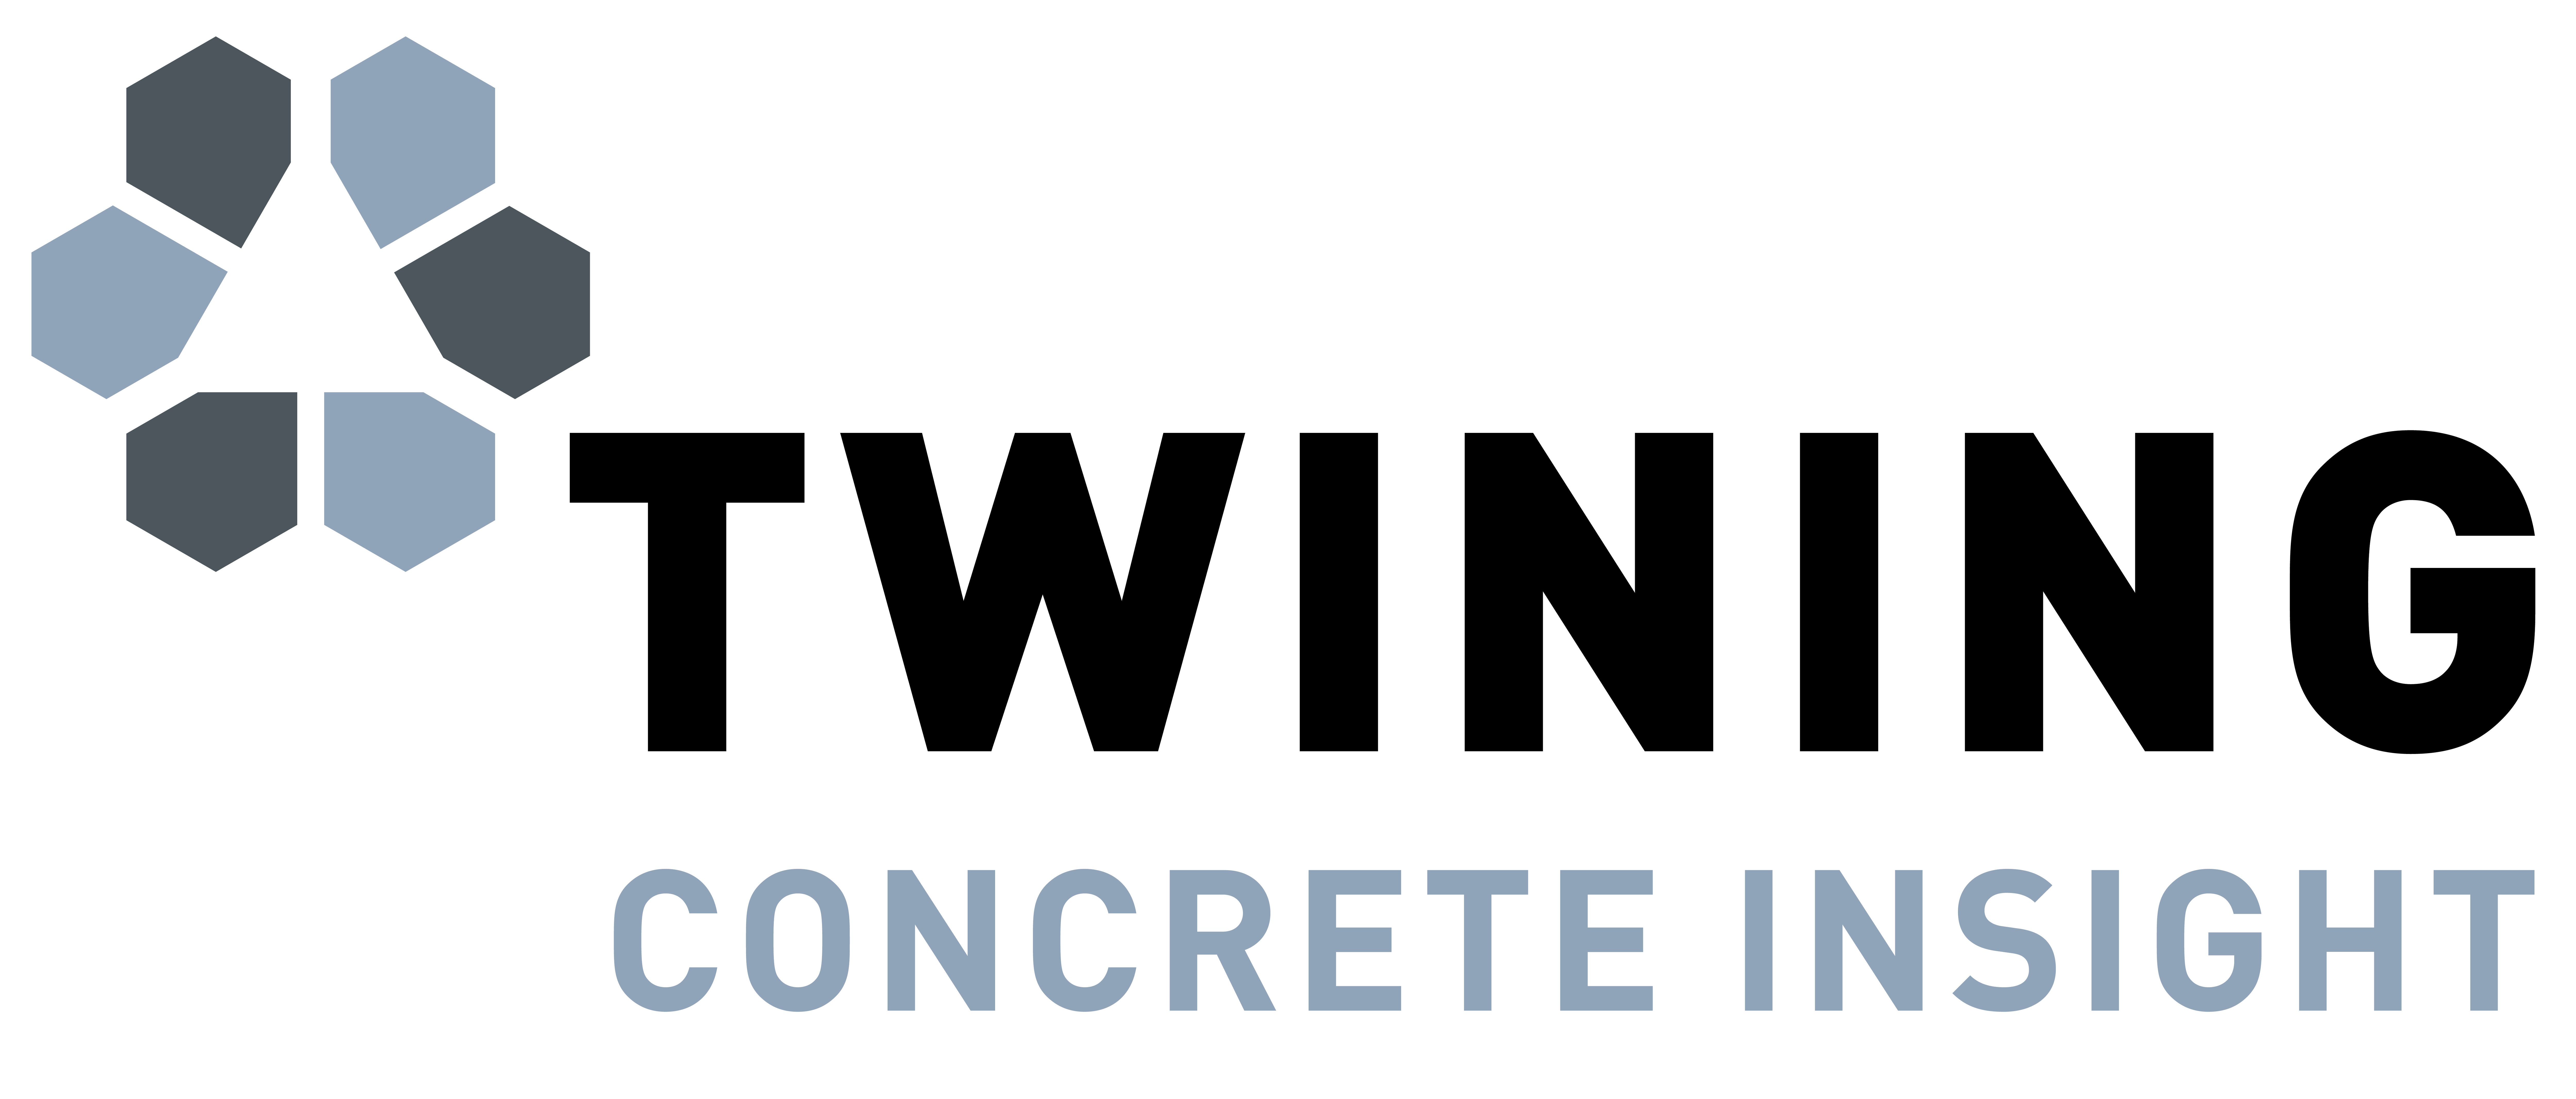 Twining Concrete Insight